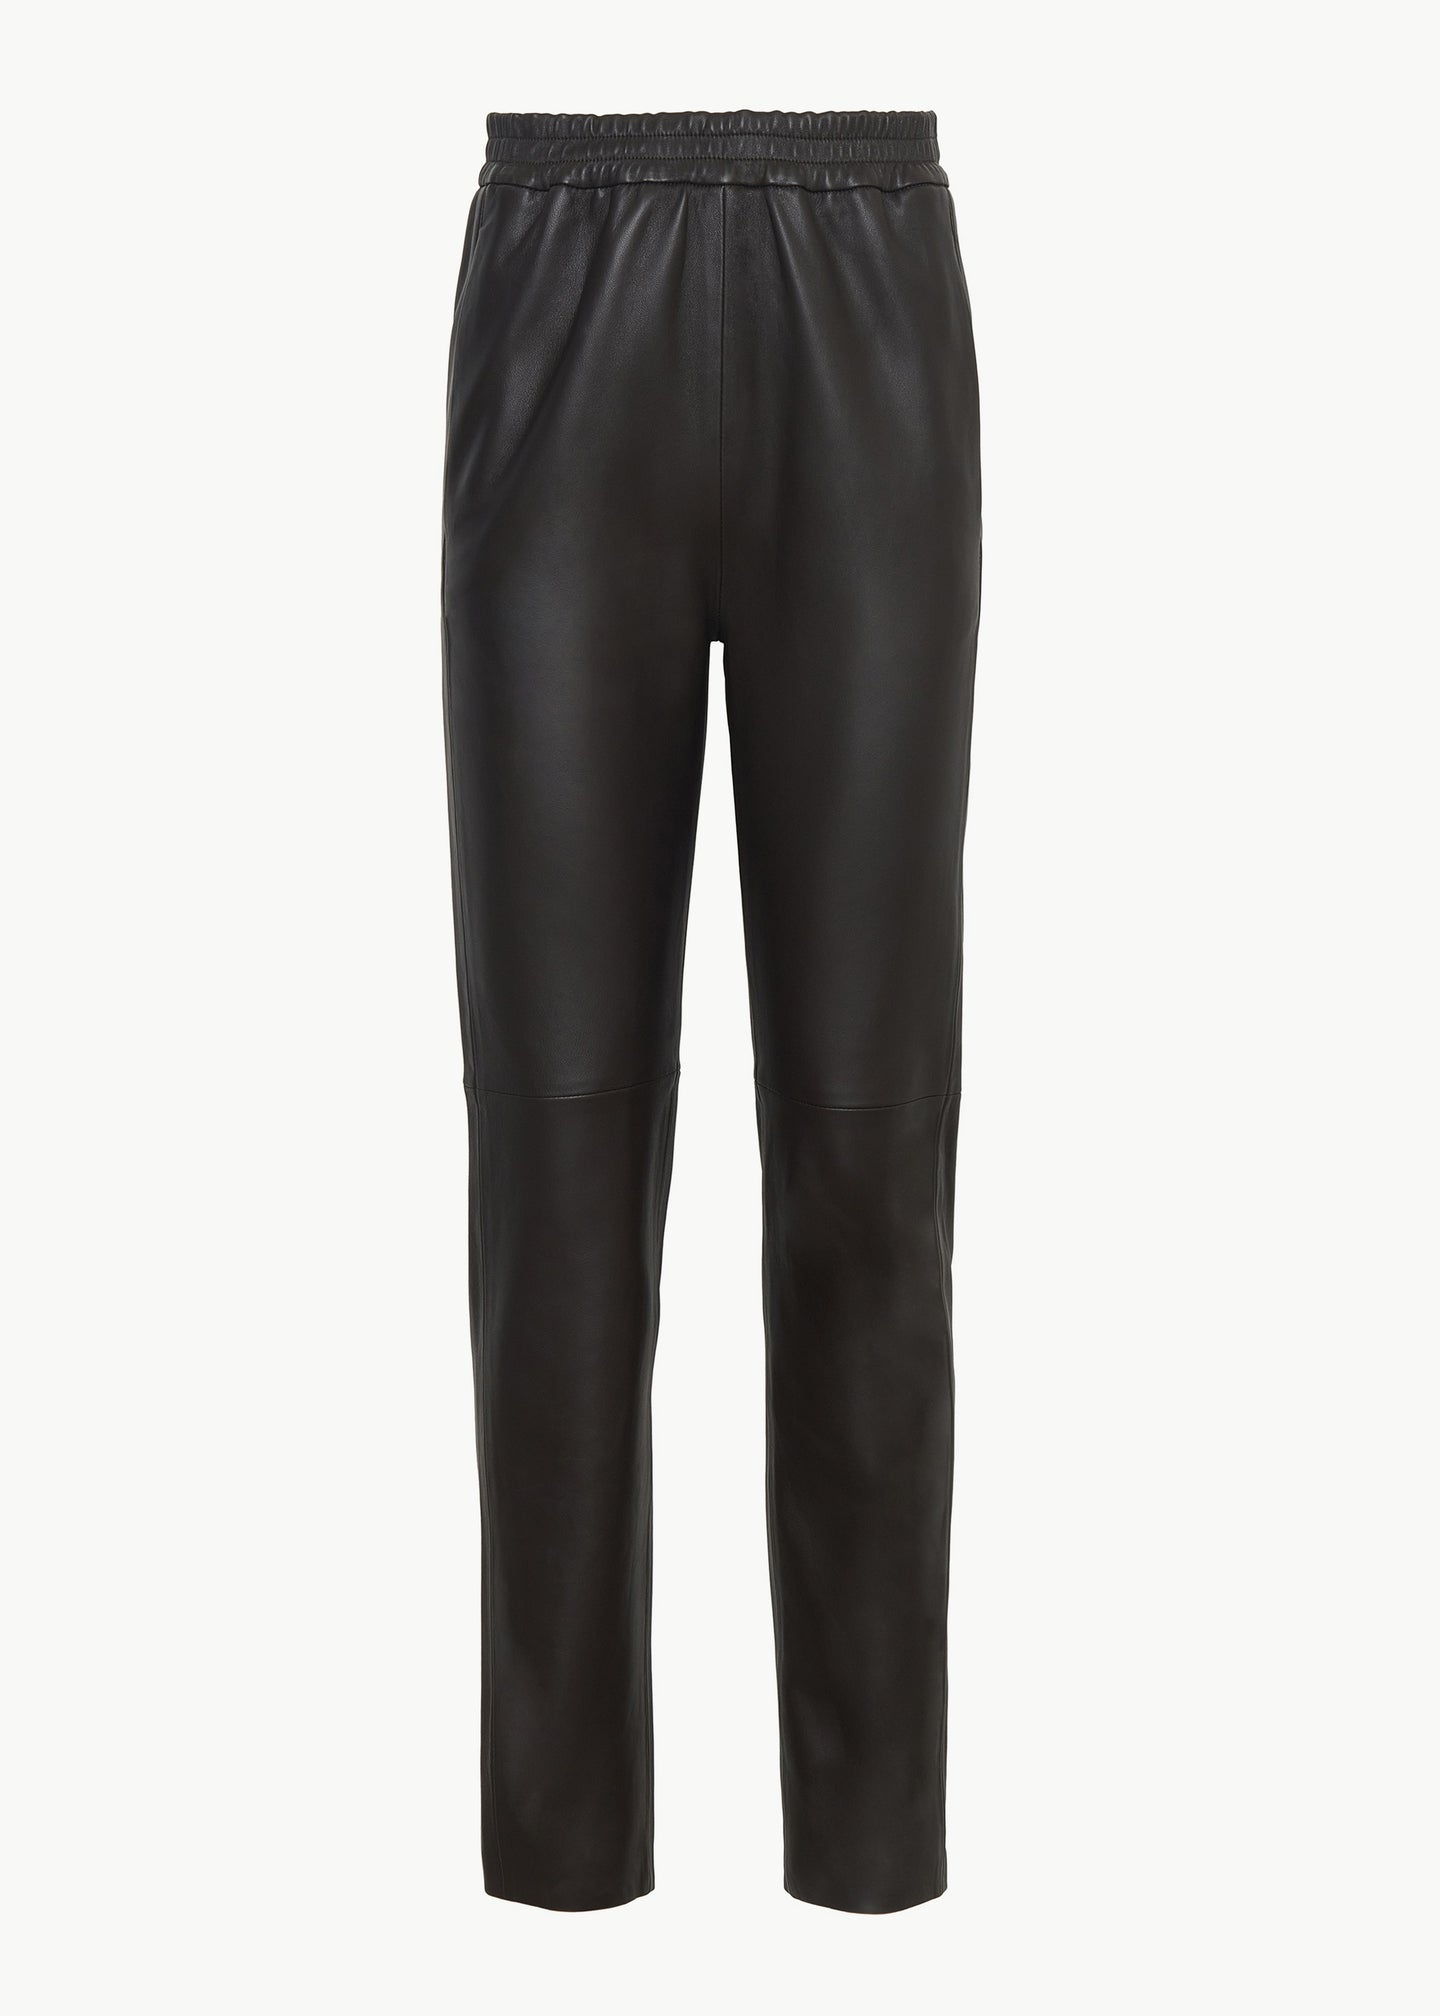 Jogger Pant in Leather - Brown - CO